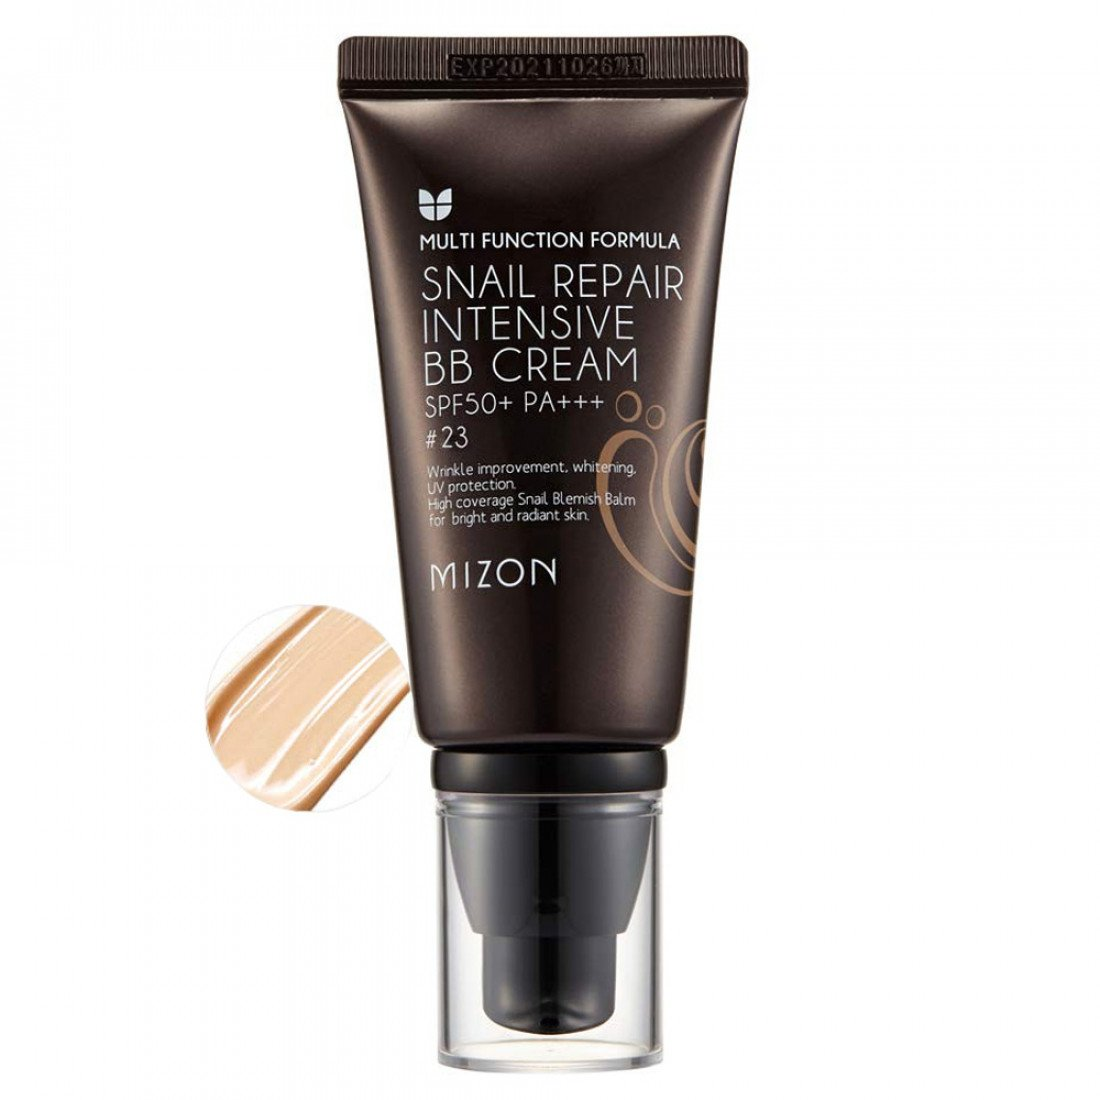 Mizon BB Snail Repair Intensive SPF50